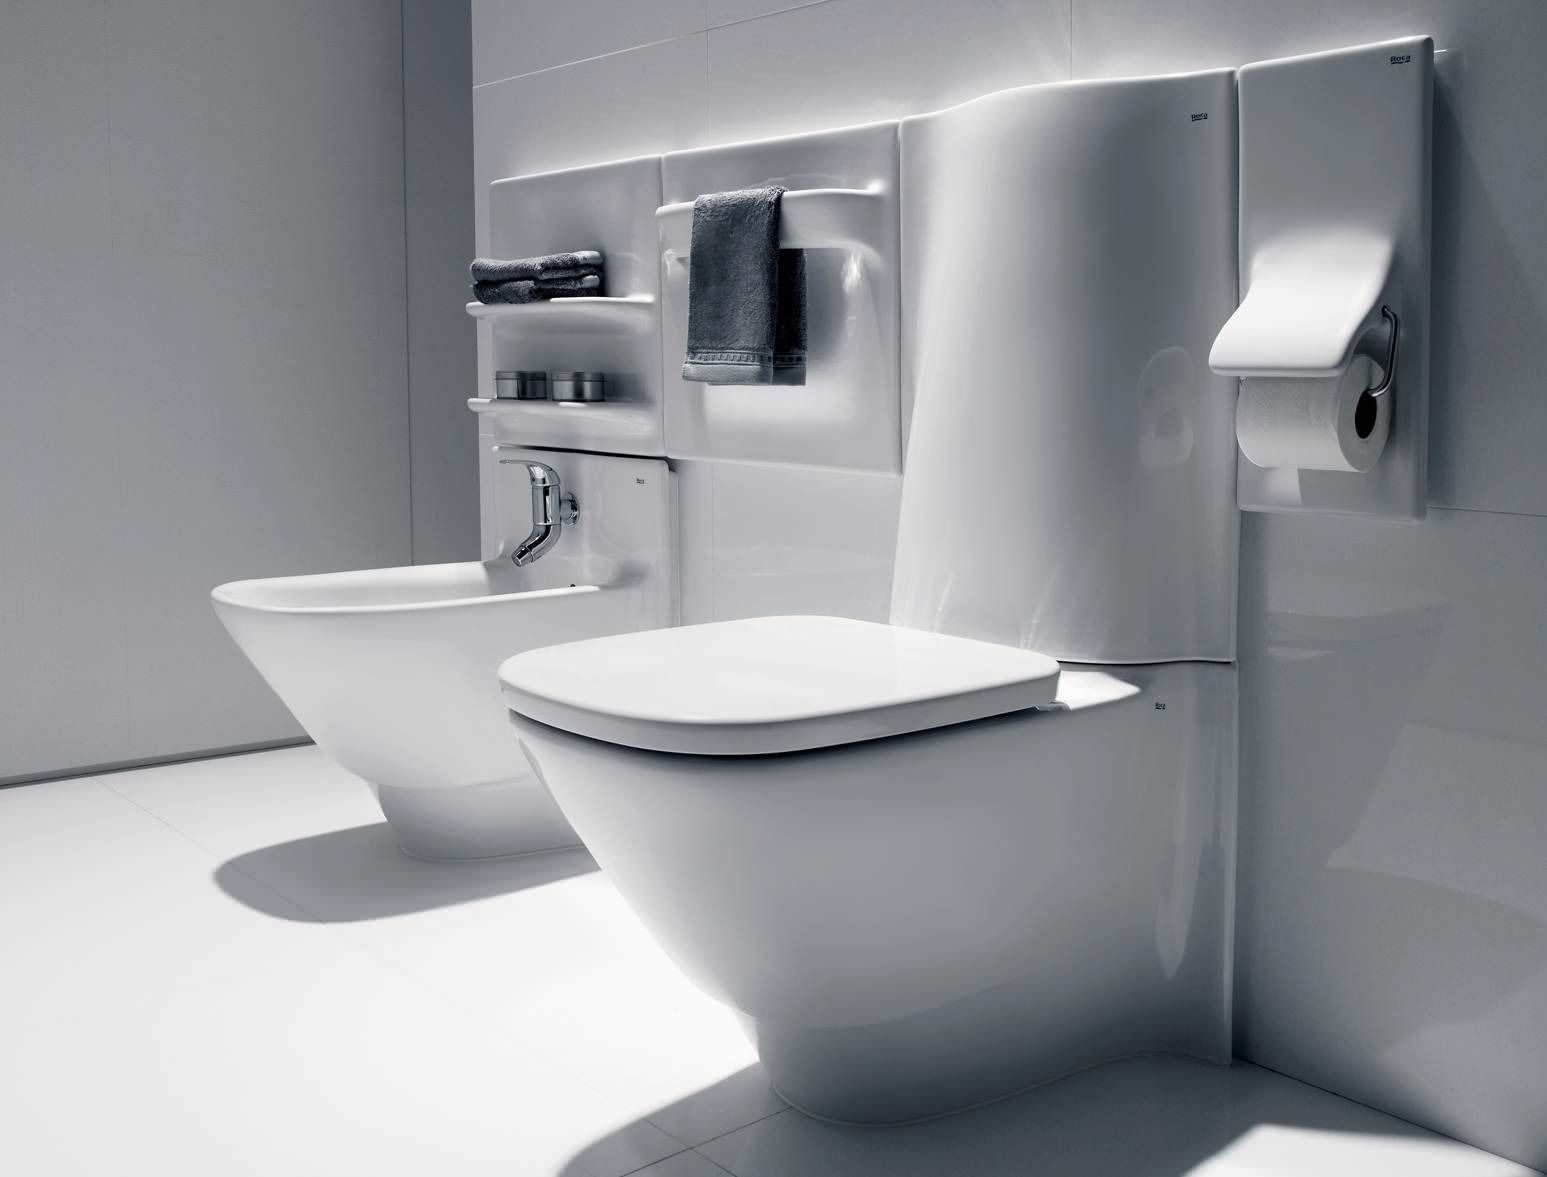 inodoro de pie de ceramica con cisterna empotrada frontalis by discover all the information about the product free standing toilet ceramic frontalis by belen rafael moneo roca and find where you can buy it